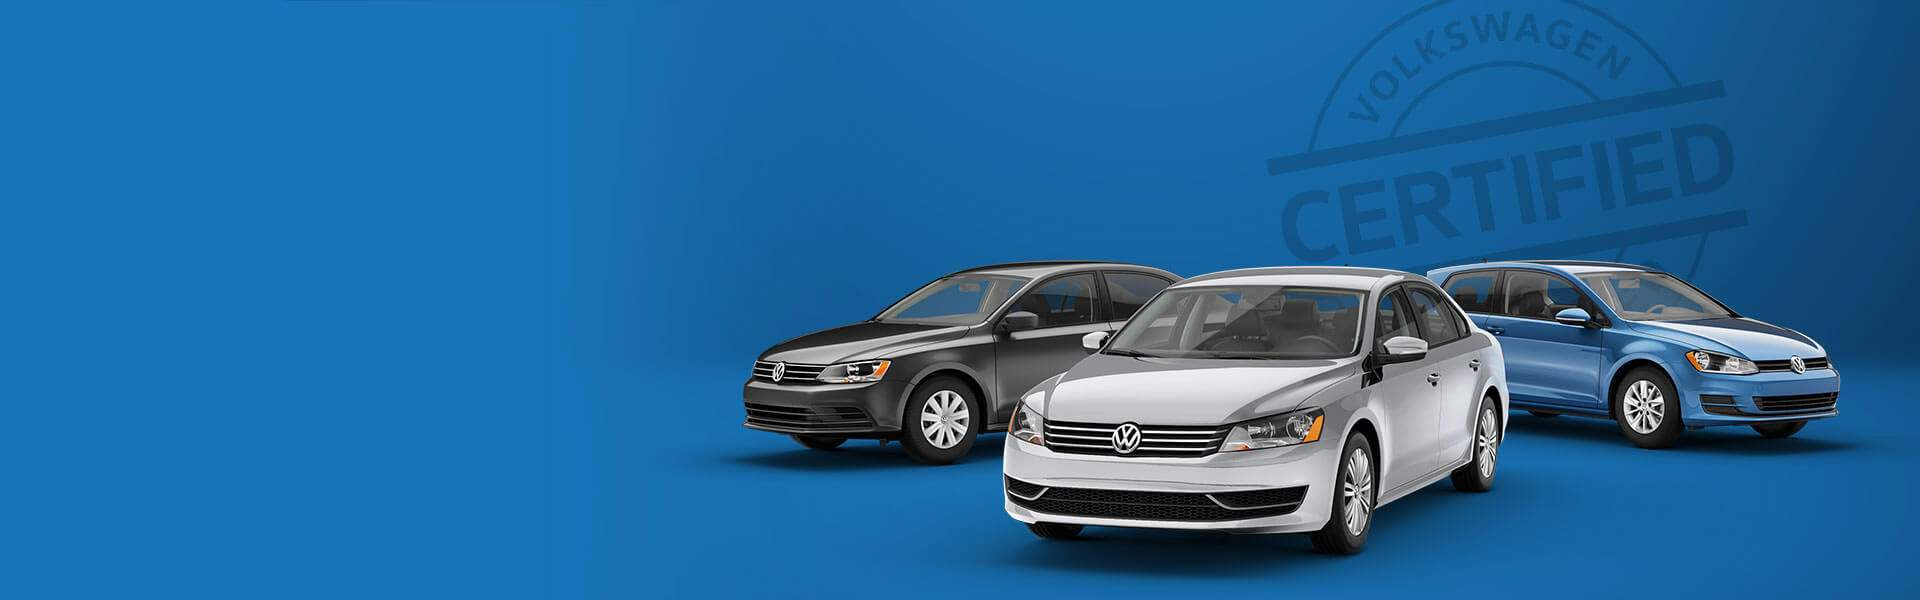 Volkswagen Certified Pre-Owned in Eau Claire, WI